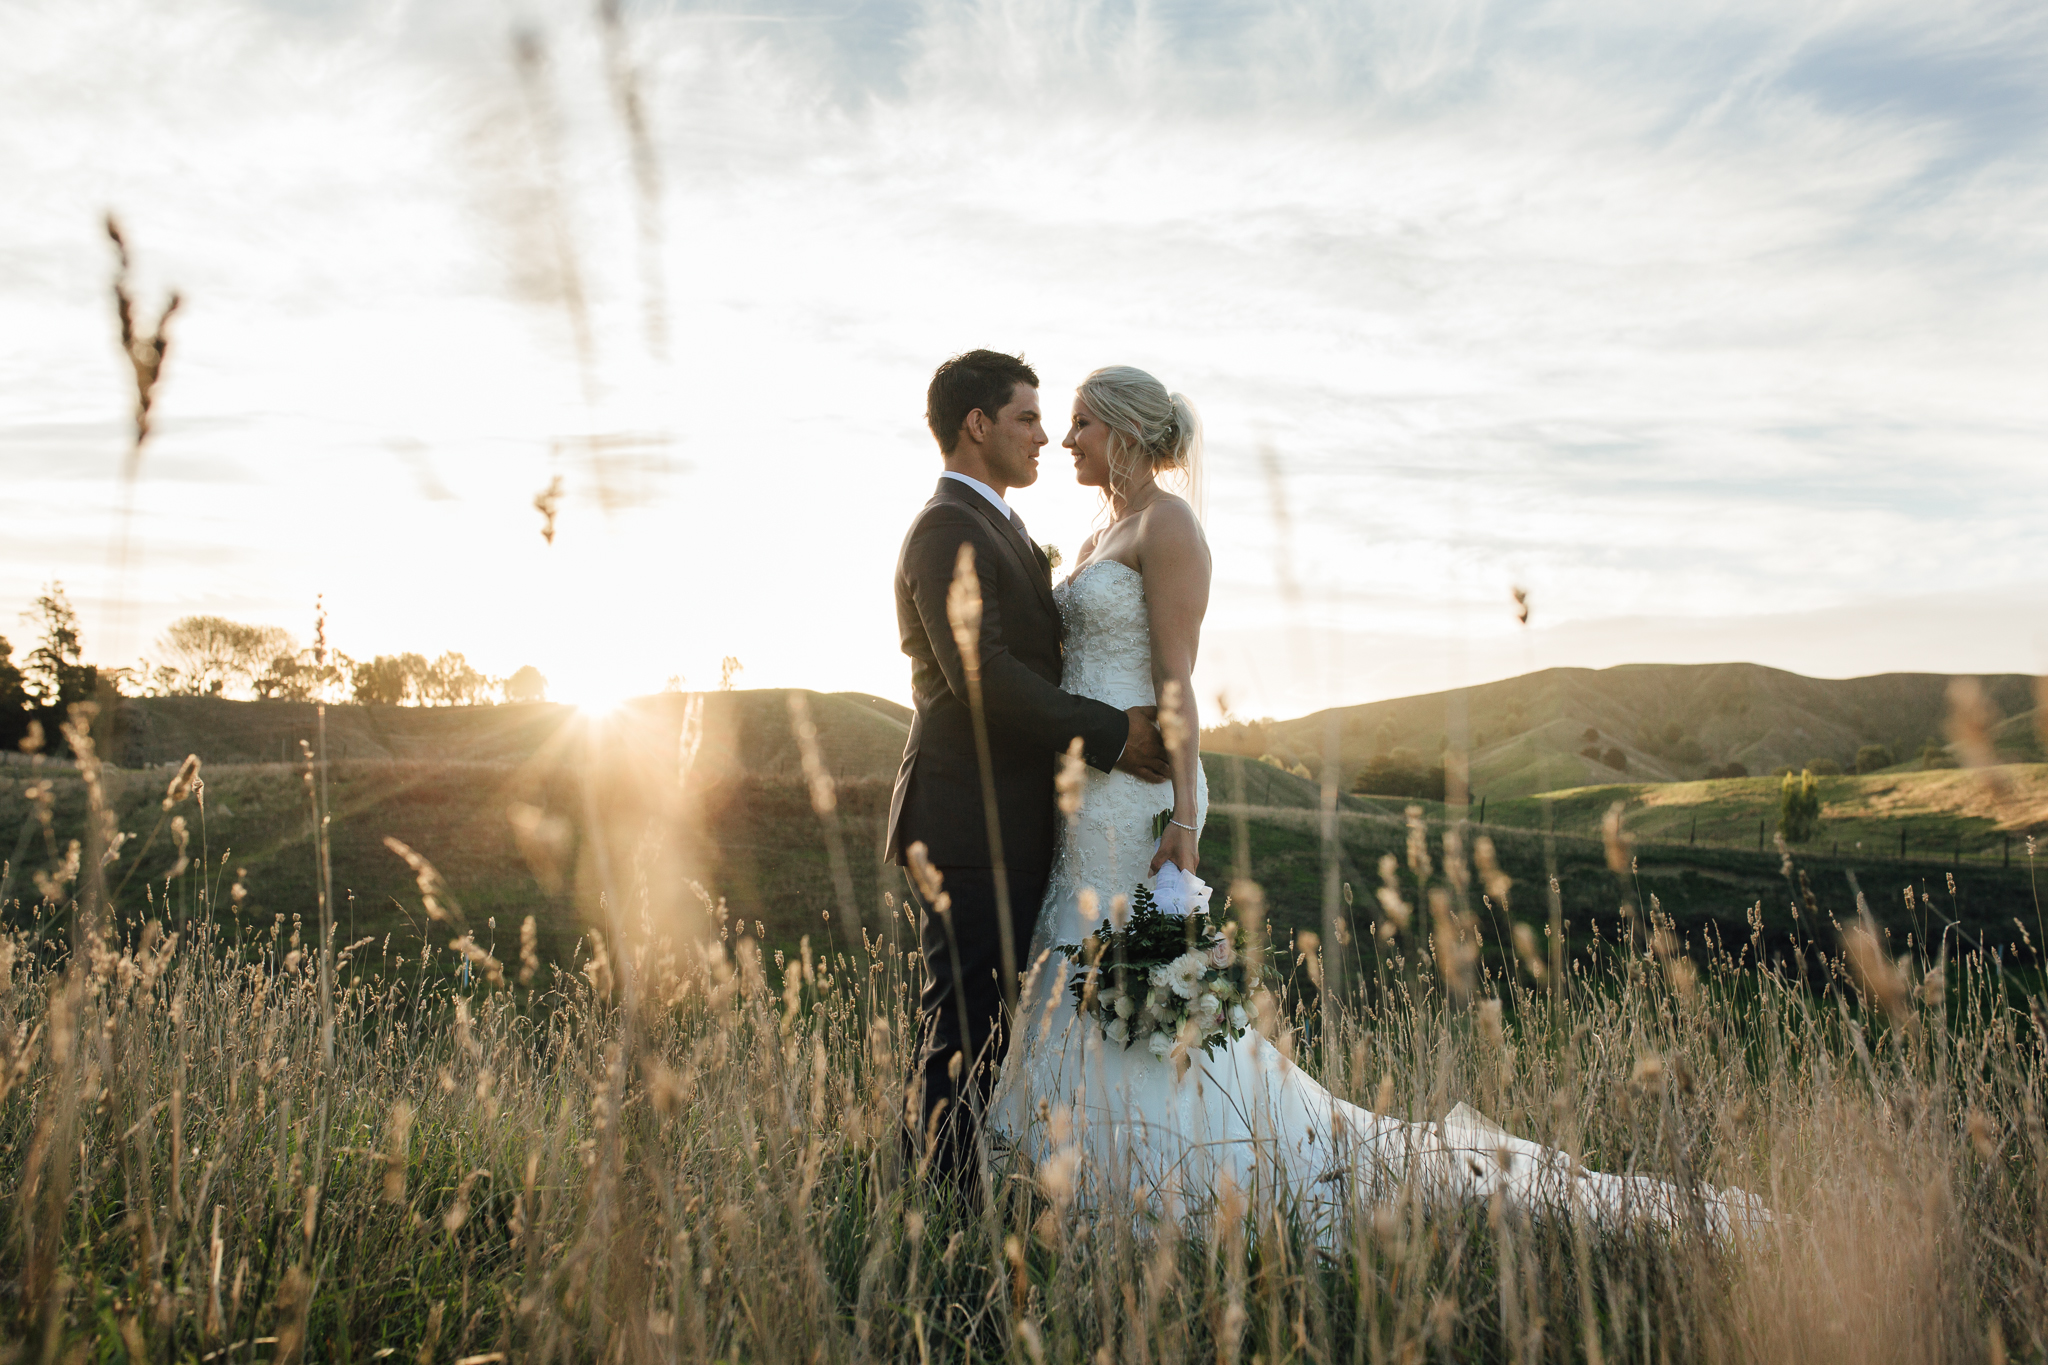 Mark & Bernie | Hawke's Bay, New Zealand.